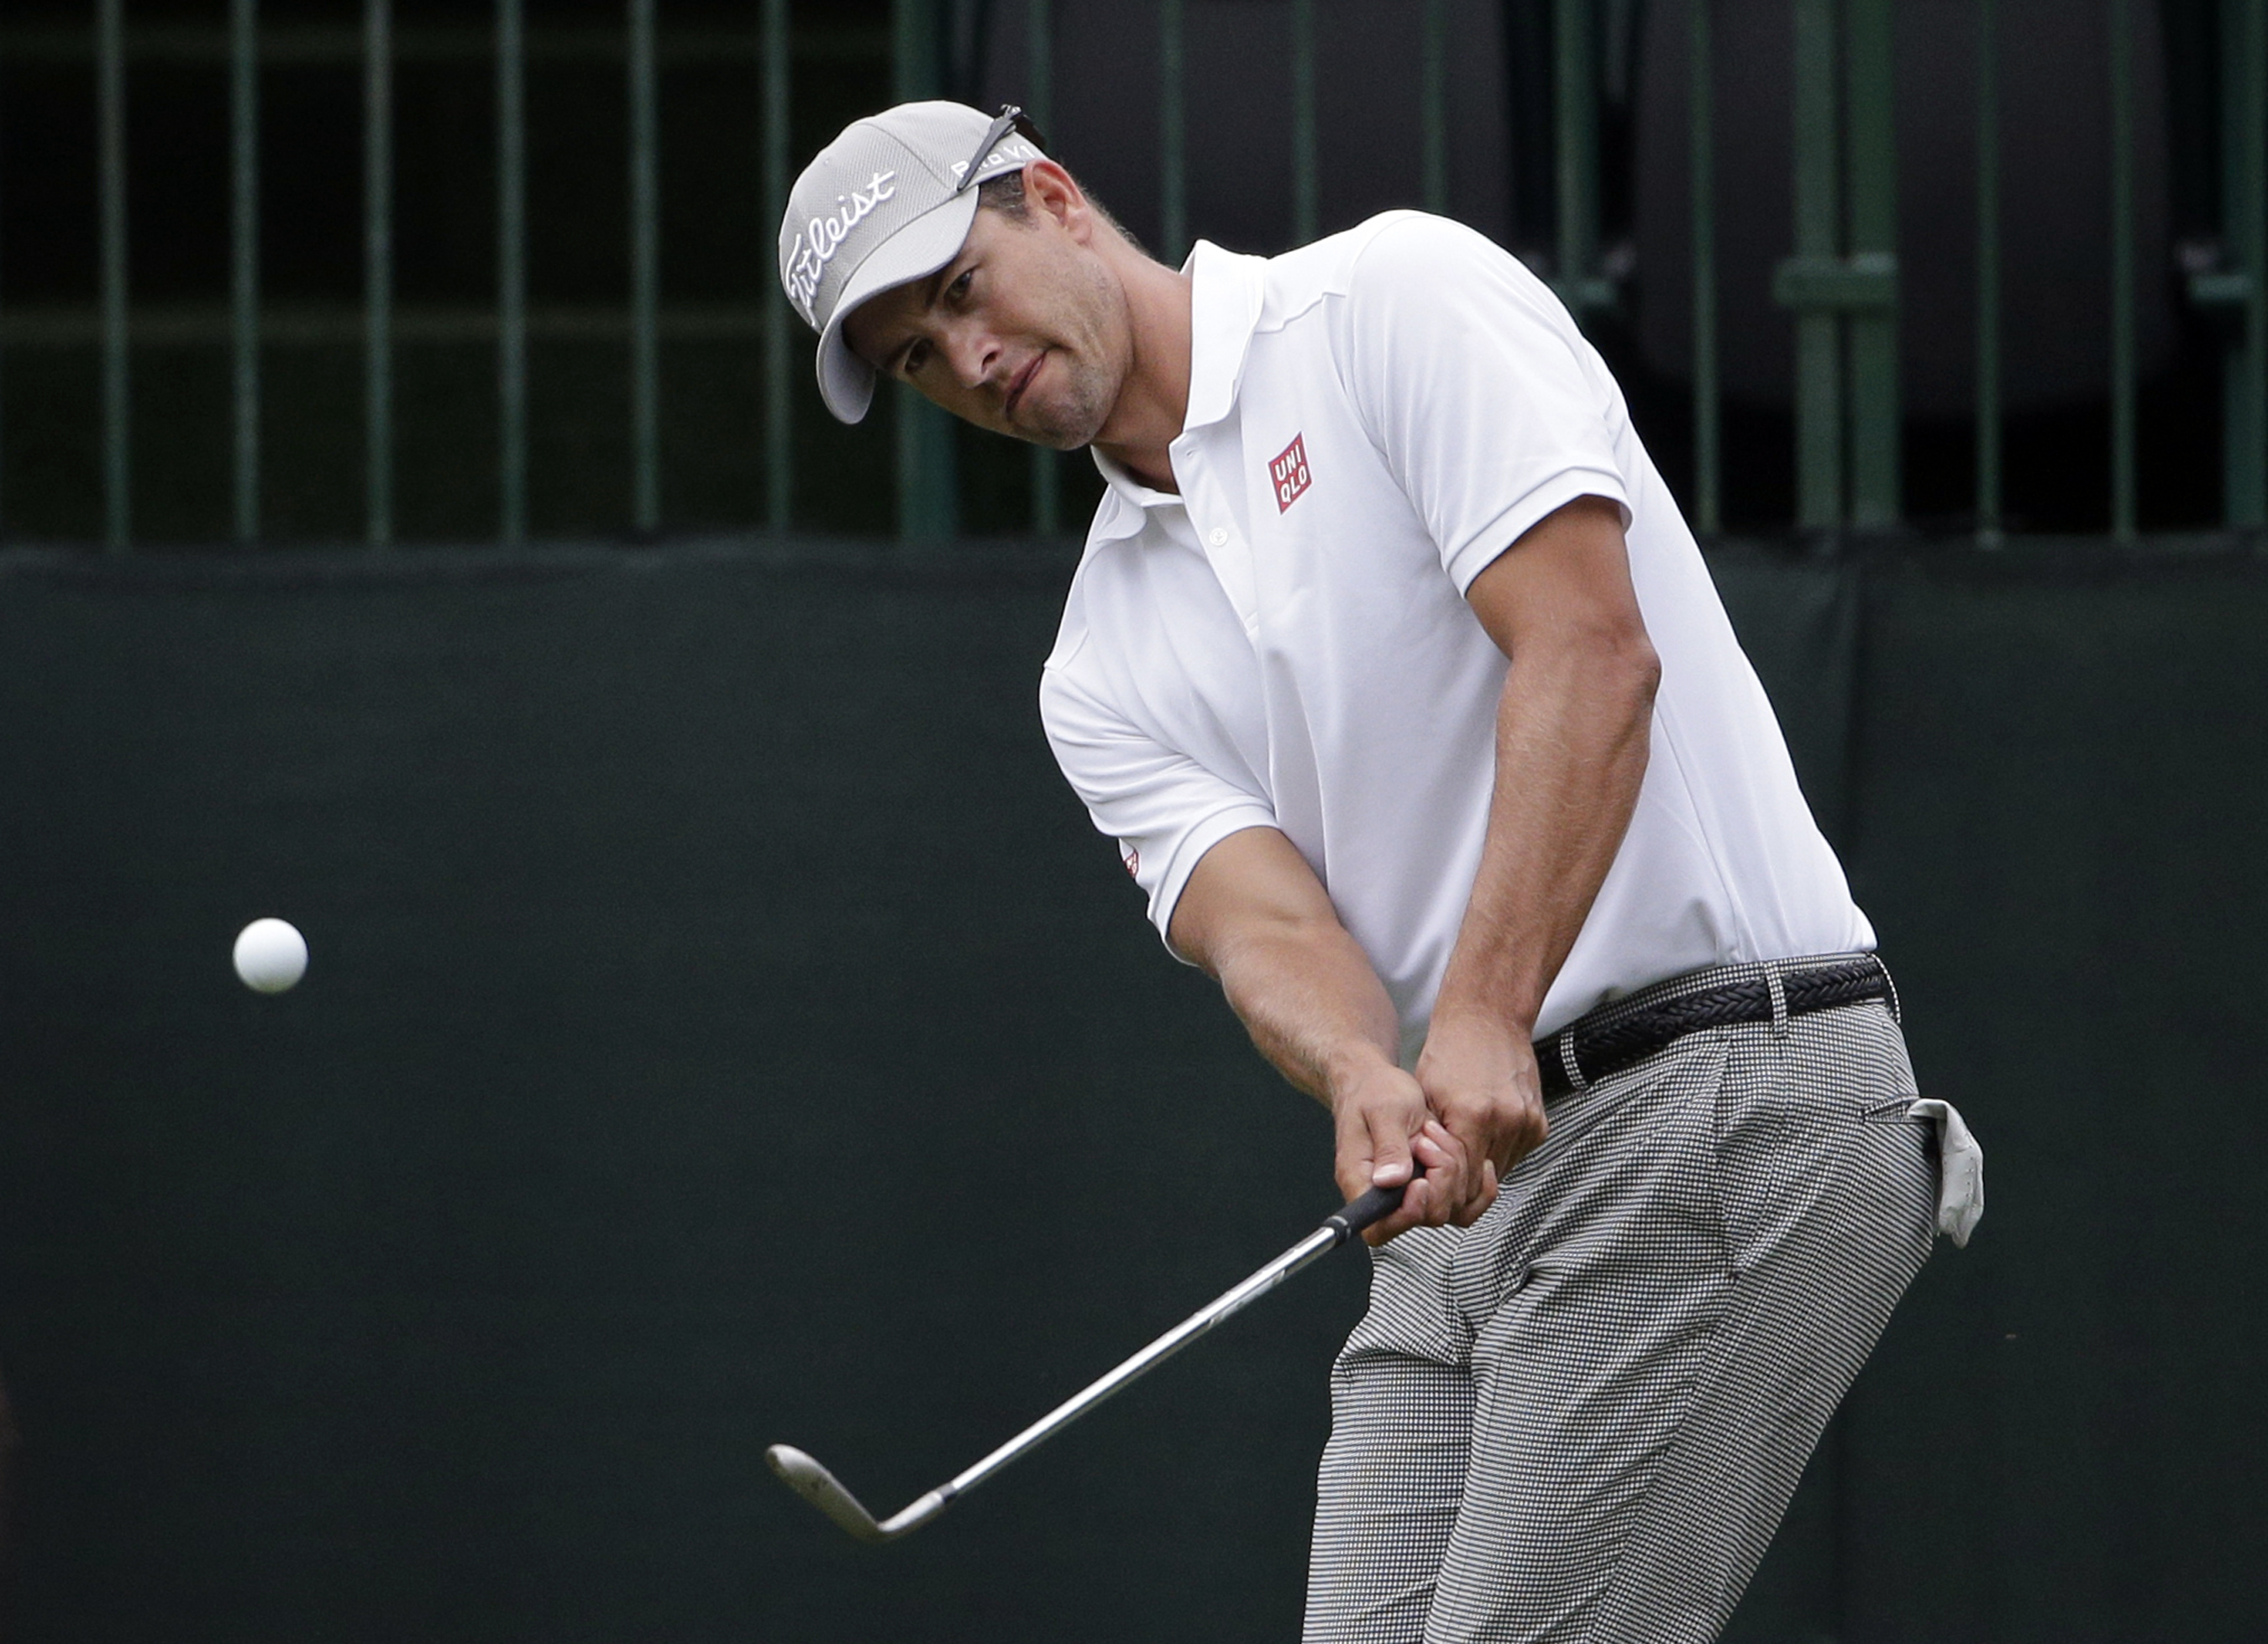 Adam Scott, of Australia, chips to the 10th green during the second round of the Wells Fargo Championship golf tournament at Quail Hollow Club in Charlotte, N.C., Friday, May 15, 2015. (AP Photo/Chuck Burton)